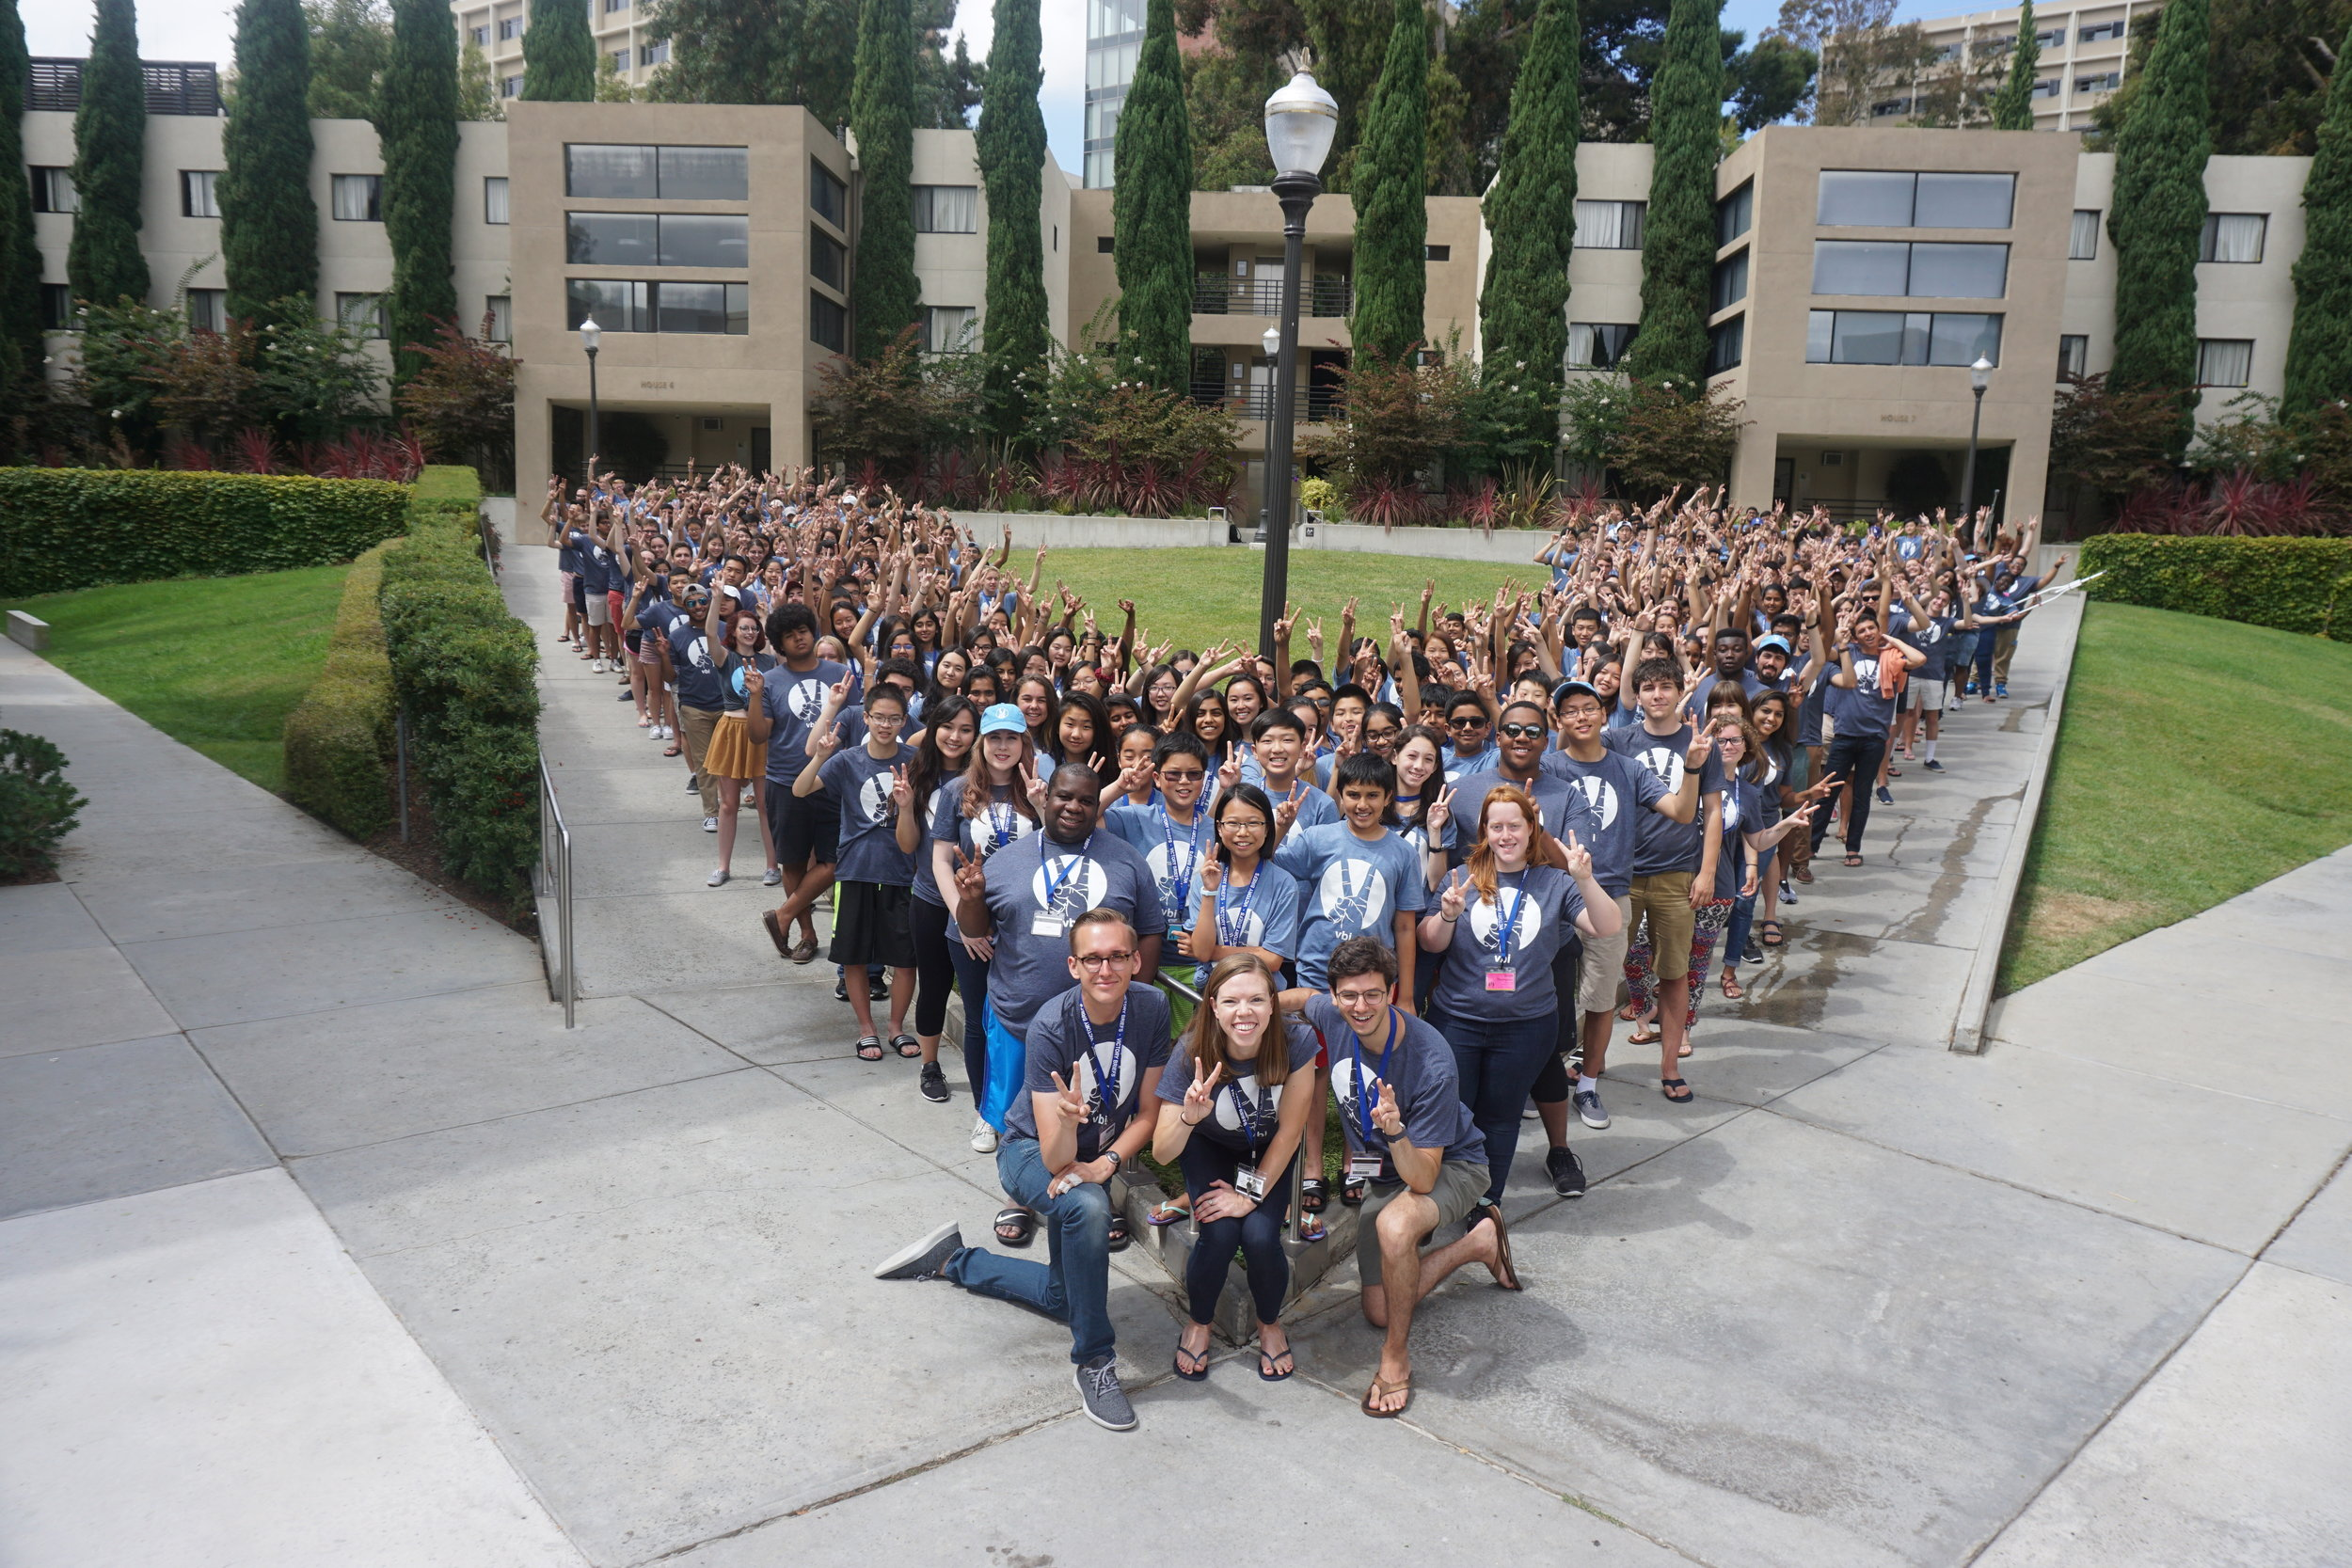 VBI staff and students pose outside of dorms at UCLA in 2017